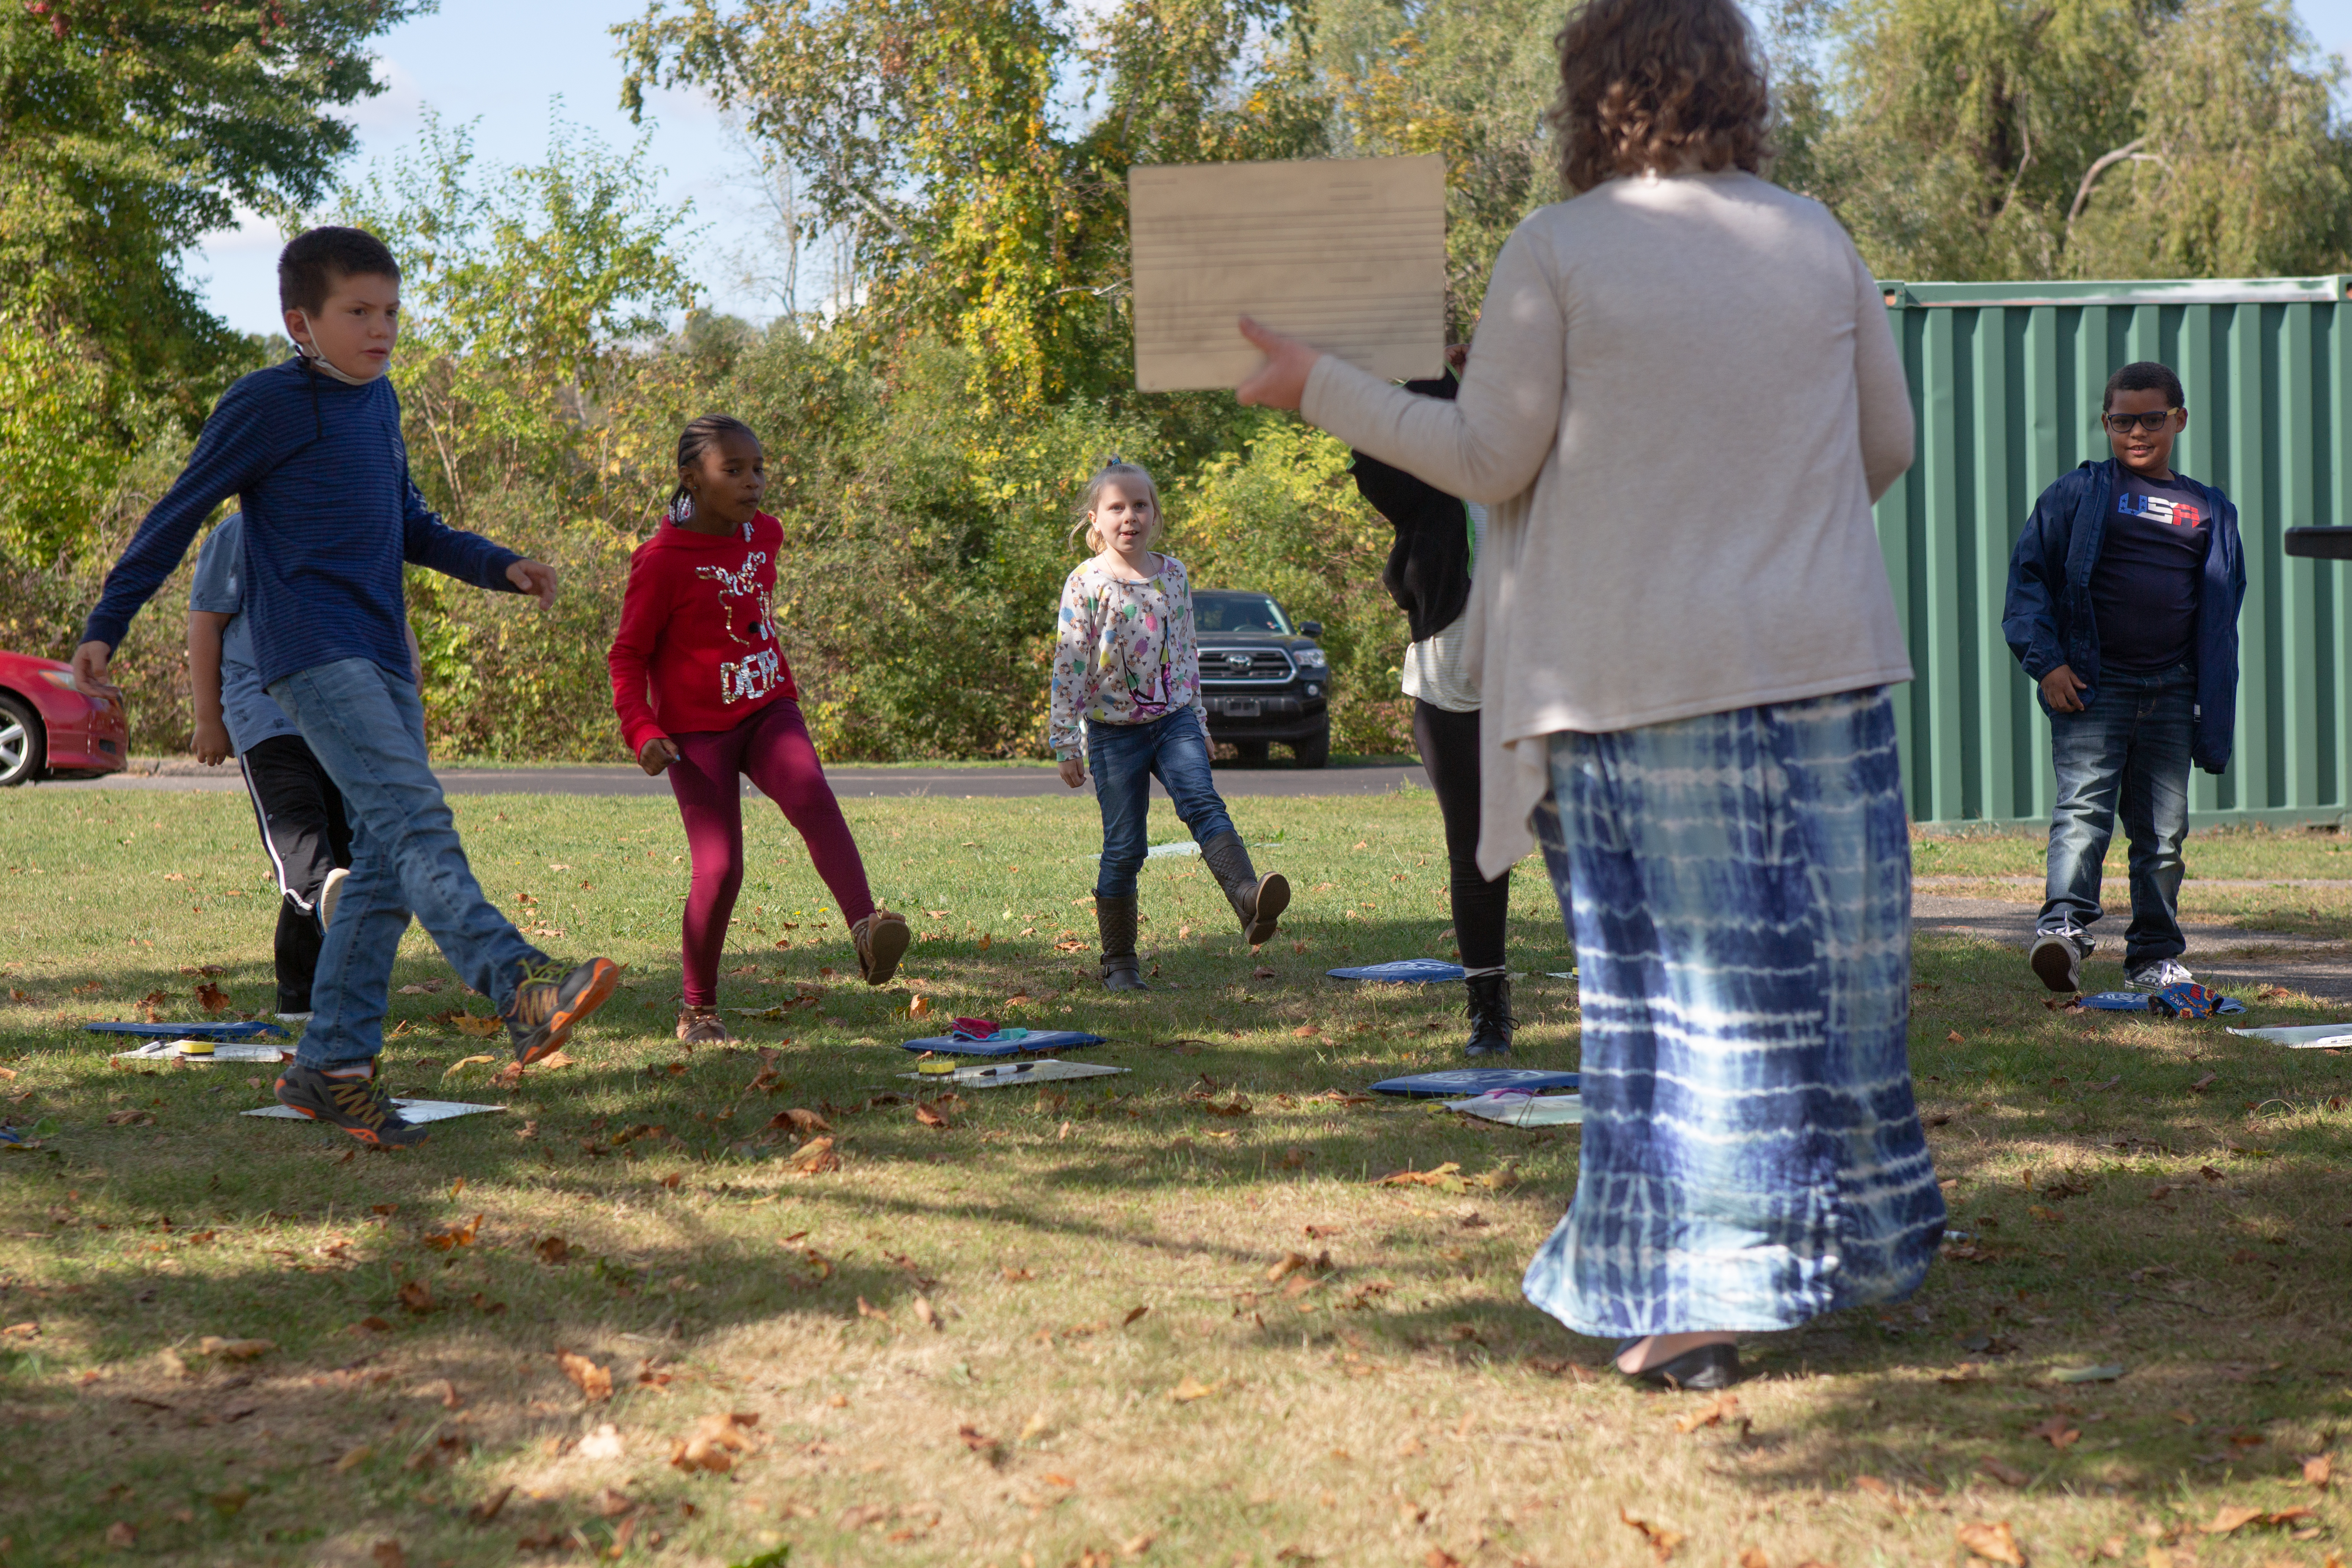 A teacher in a white sweater and a long blue-and-white skirt stand on a lawn facing about a half-dozen standing students who are each lifting one leg together.